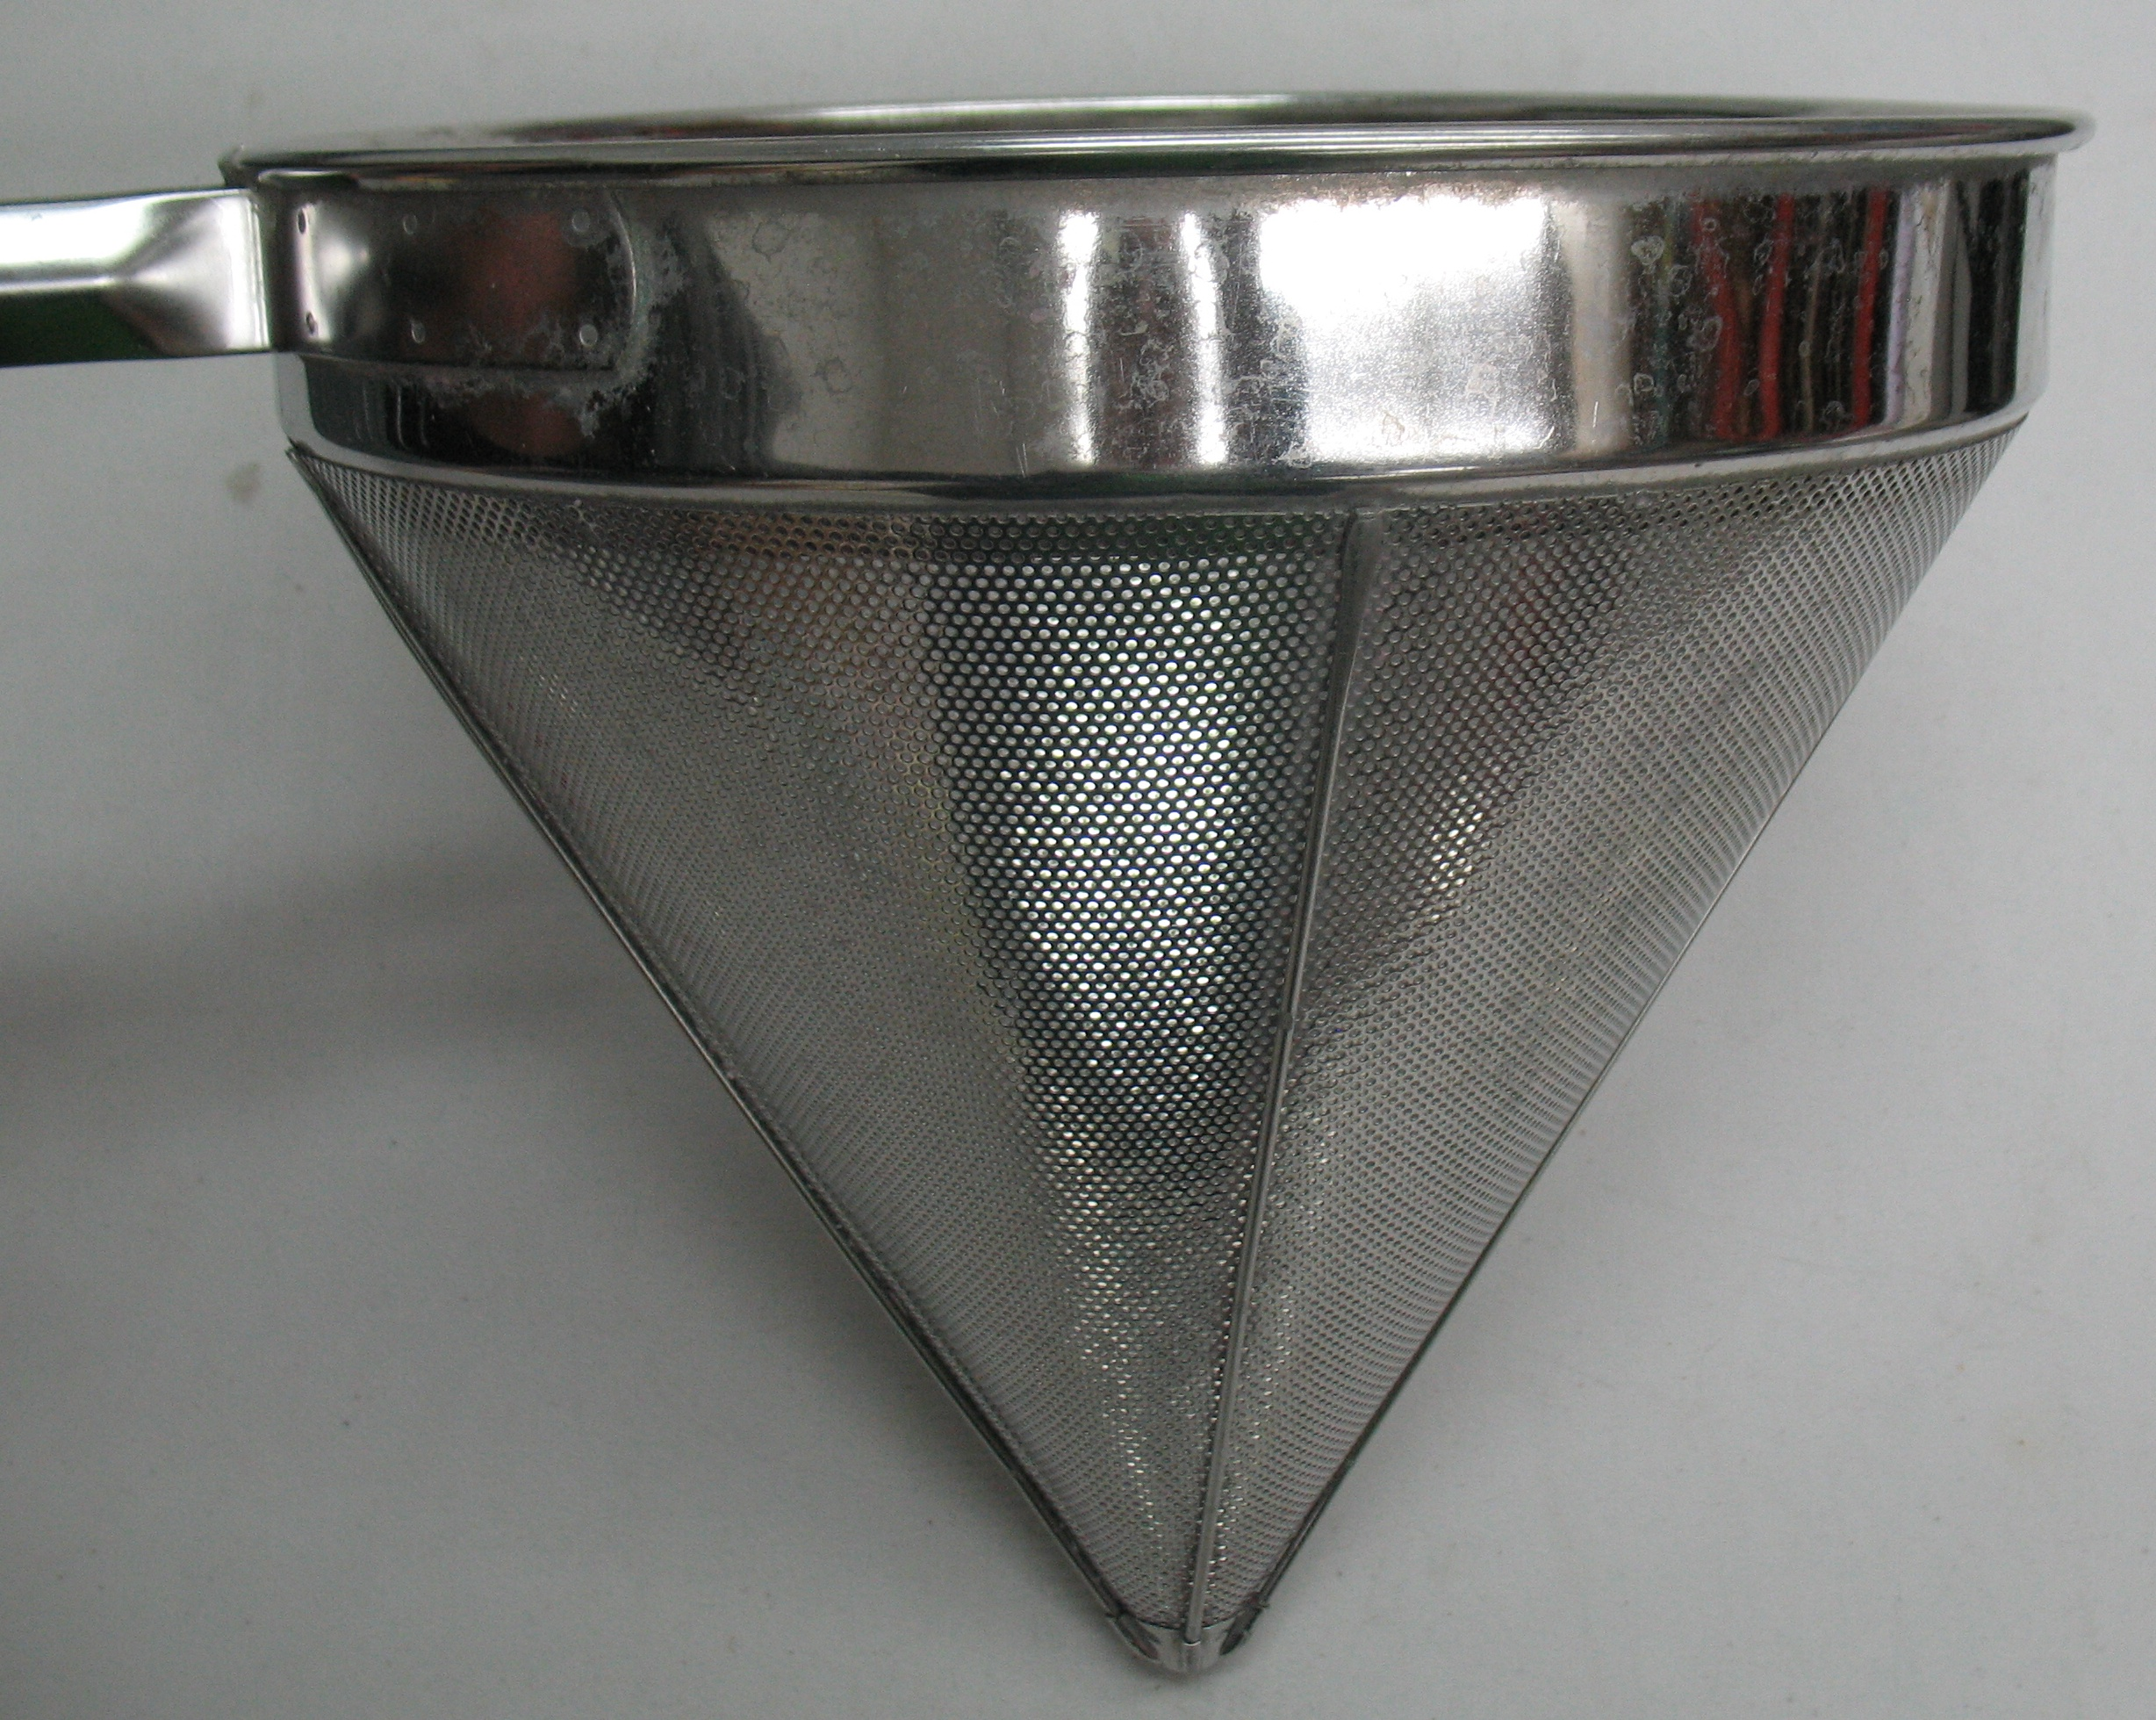 Side view of the large strainer. The perspective makes the cone appear shorter than it actually is.